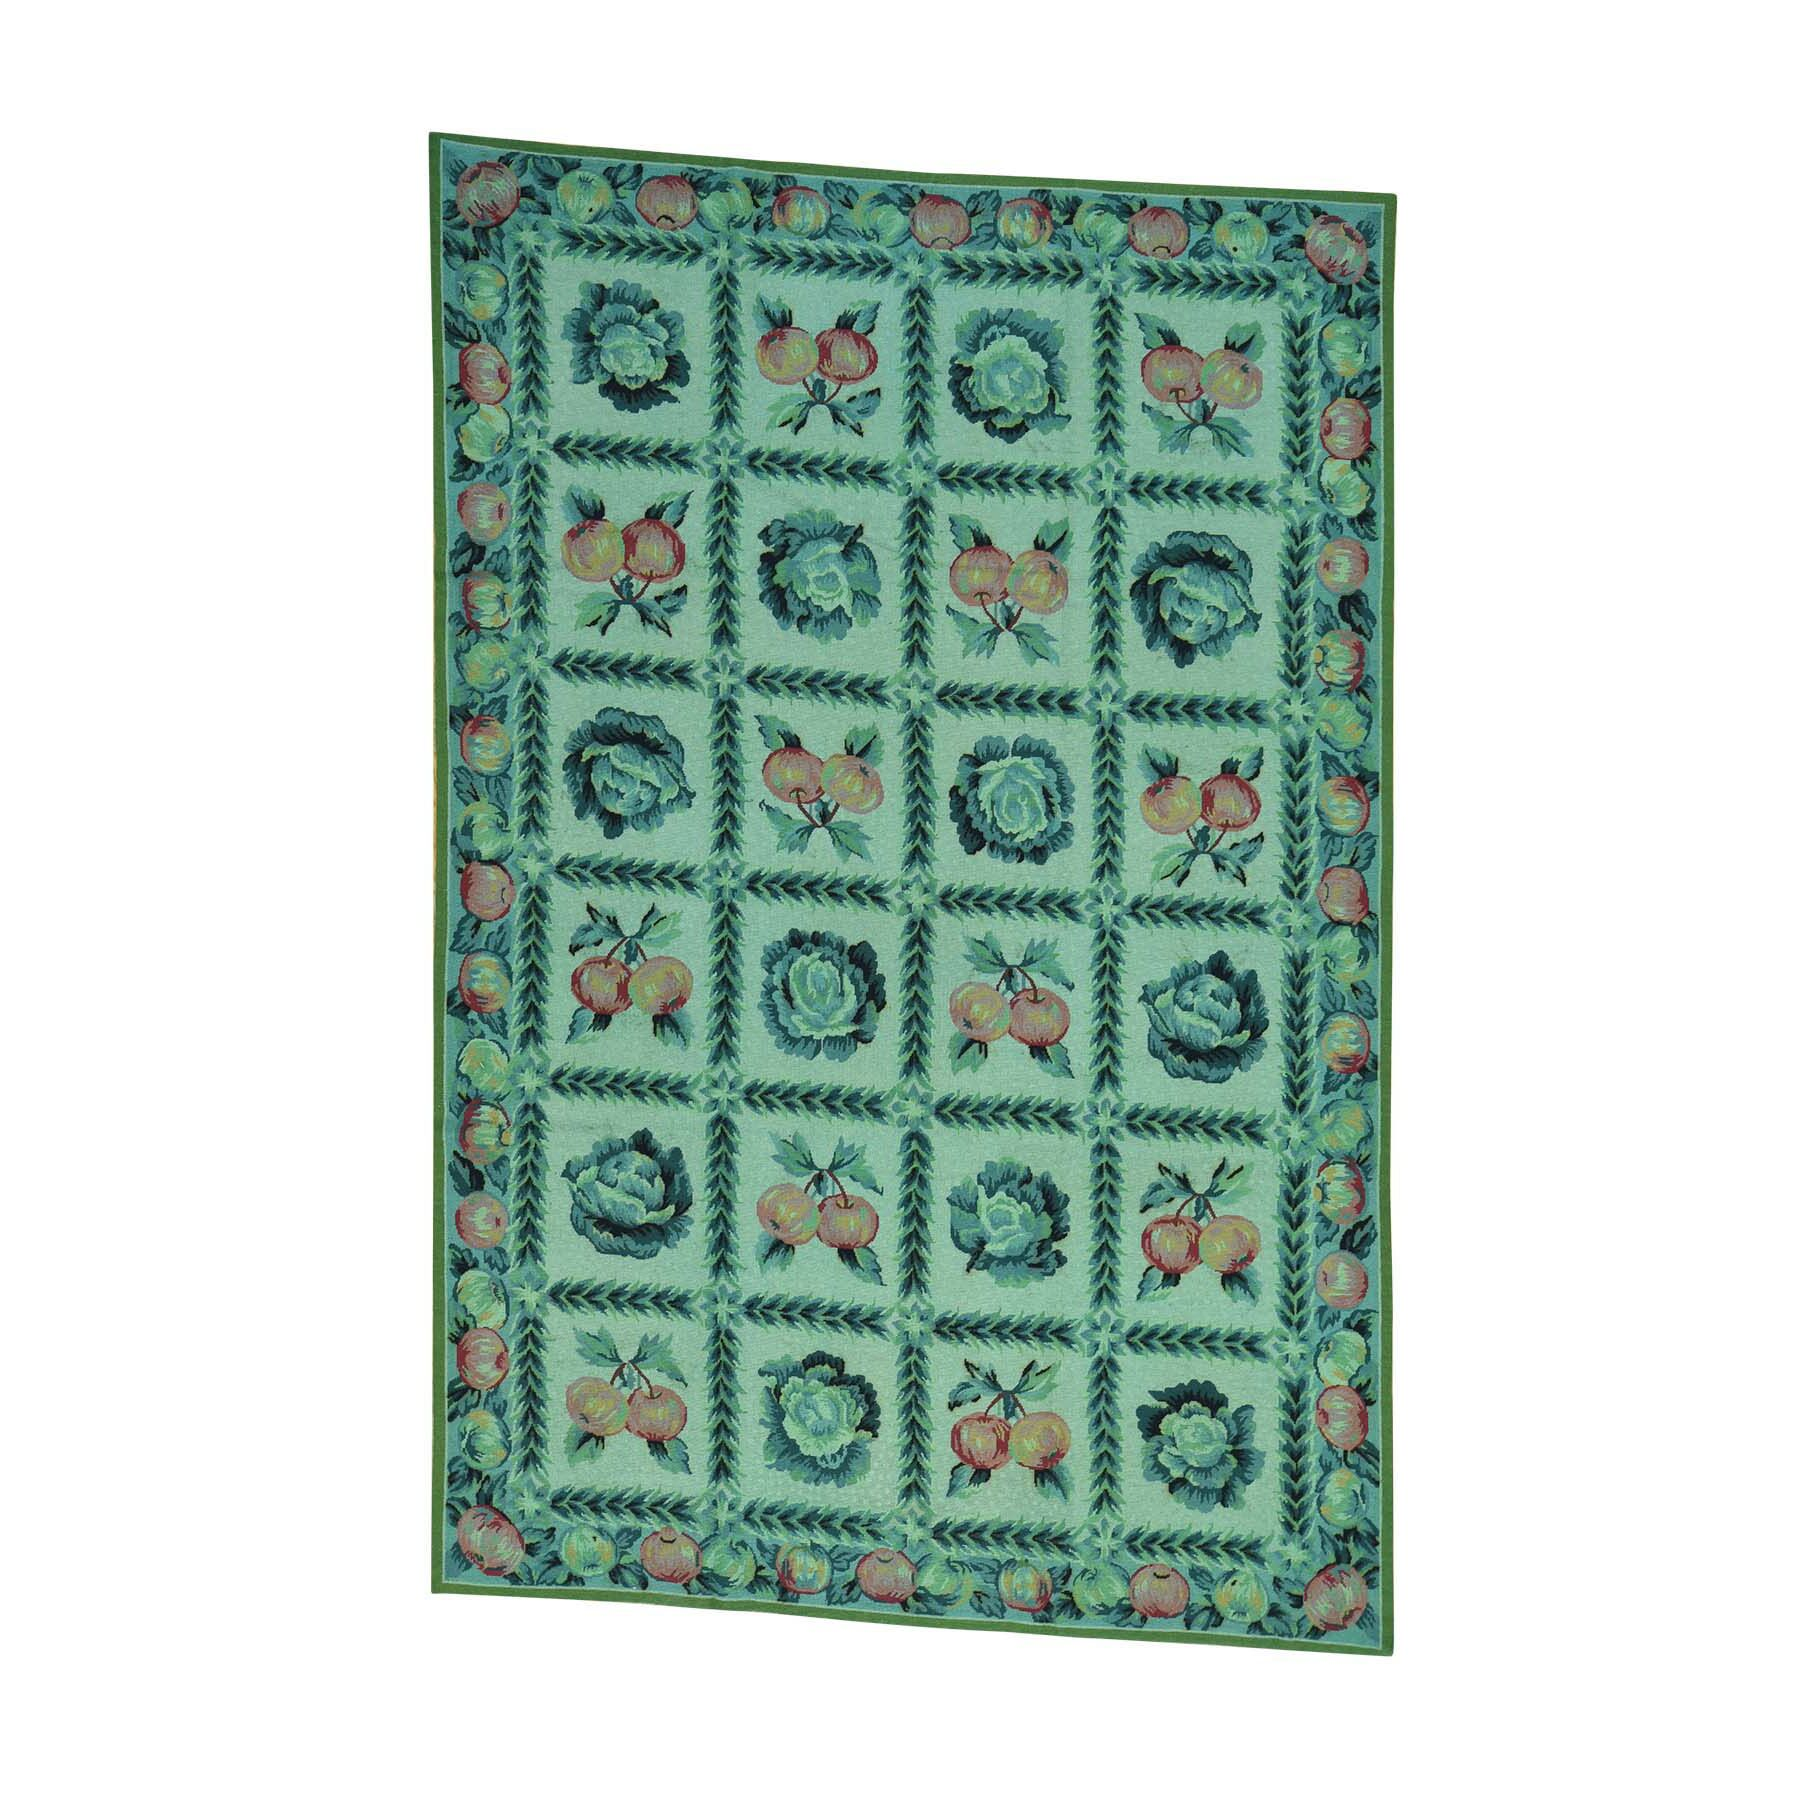 One-of-a-Kind Morello Overdyed Needlepoint with Fruits Hand-Knotted Green Area Rug